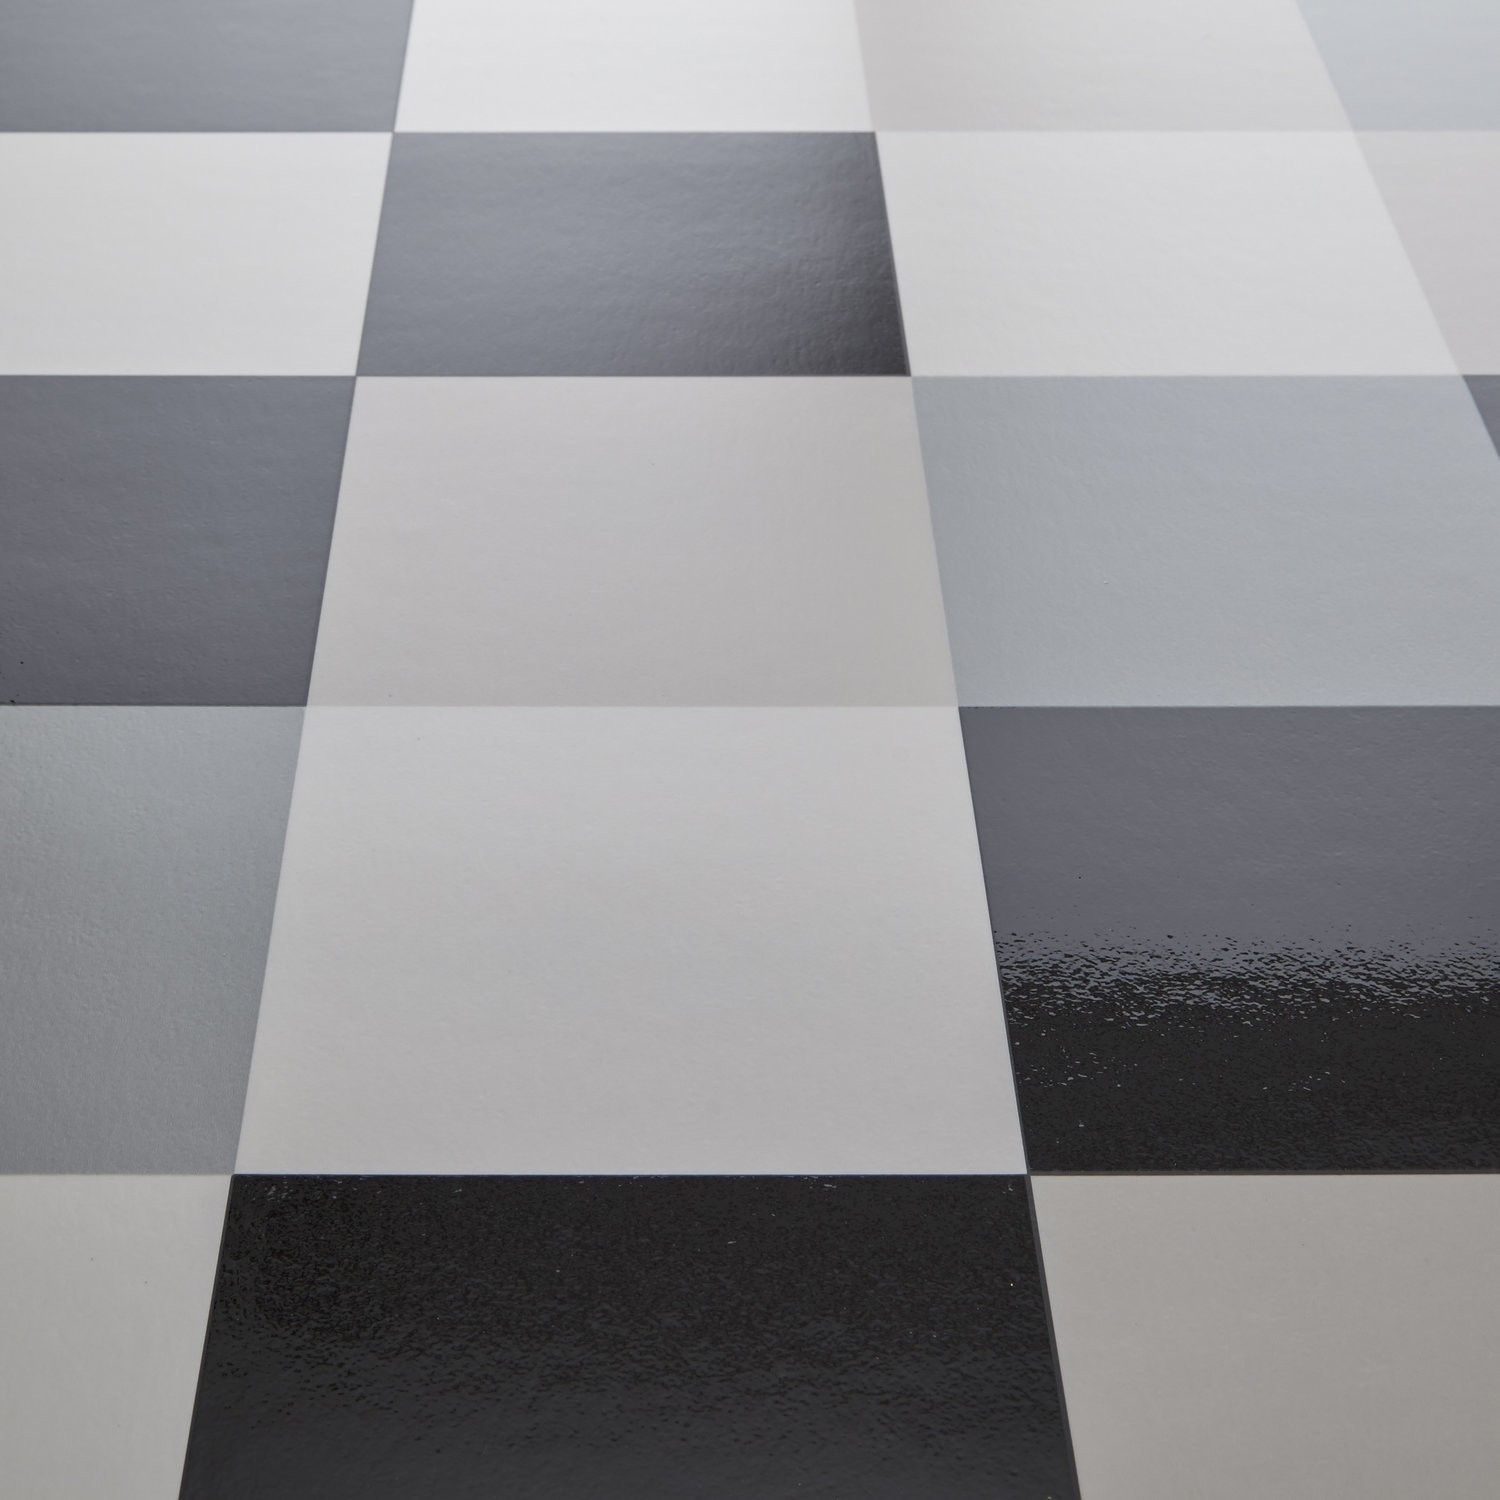 Hekto Grey/Black Chequered Tile Vinyl Flooring